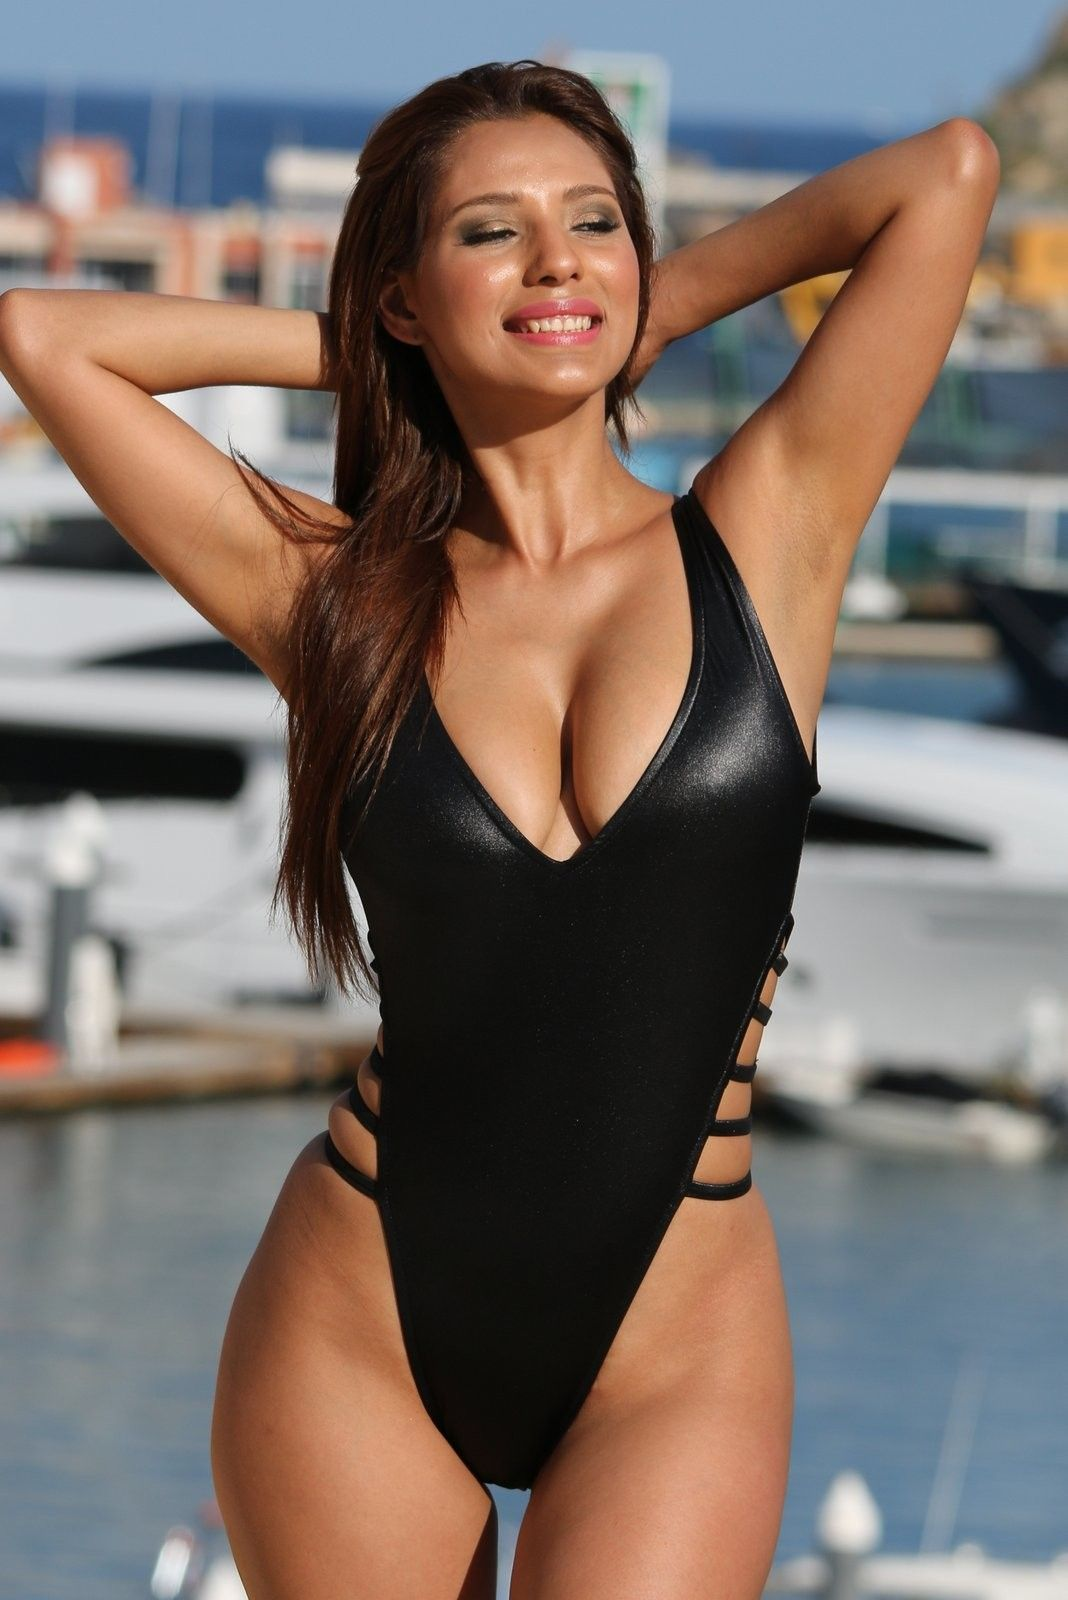 13e5cee8fd4 UjENA Strappy Slick High Cut One Piece Swimsuit. FREE Shipping with ...